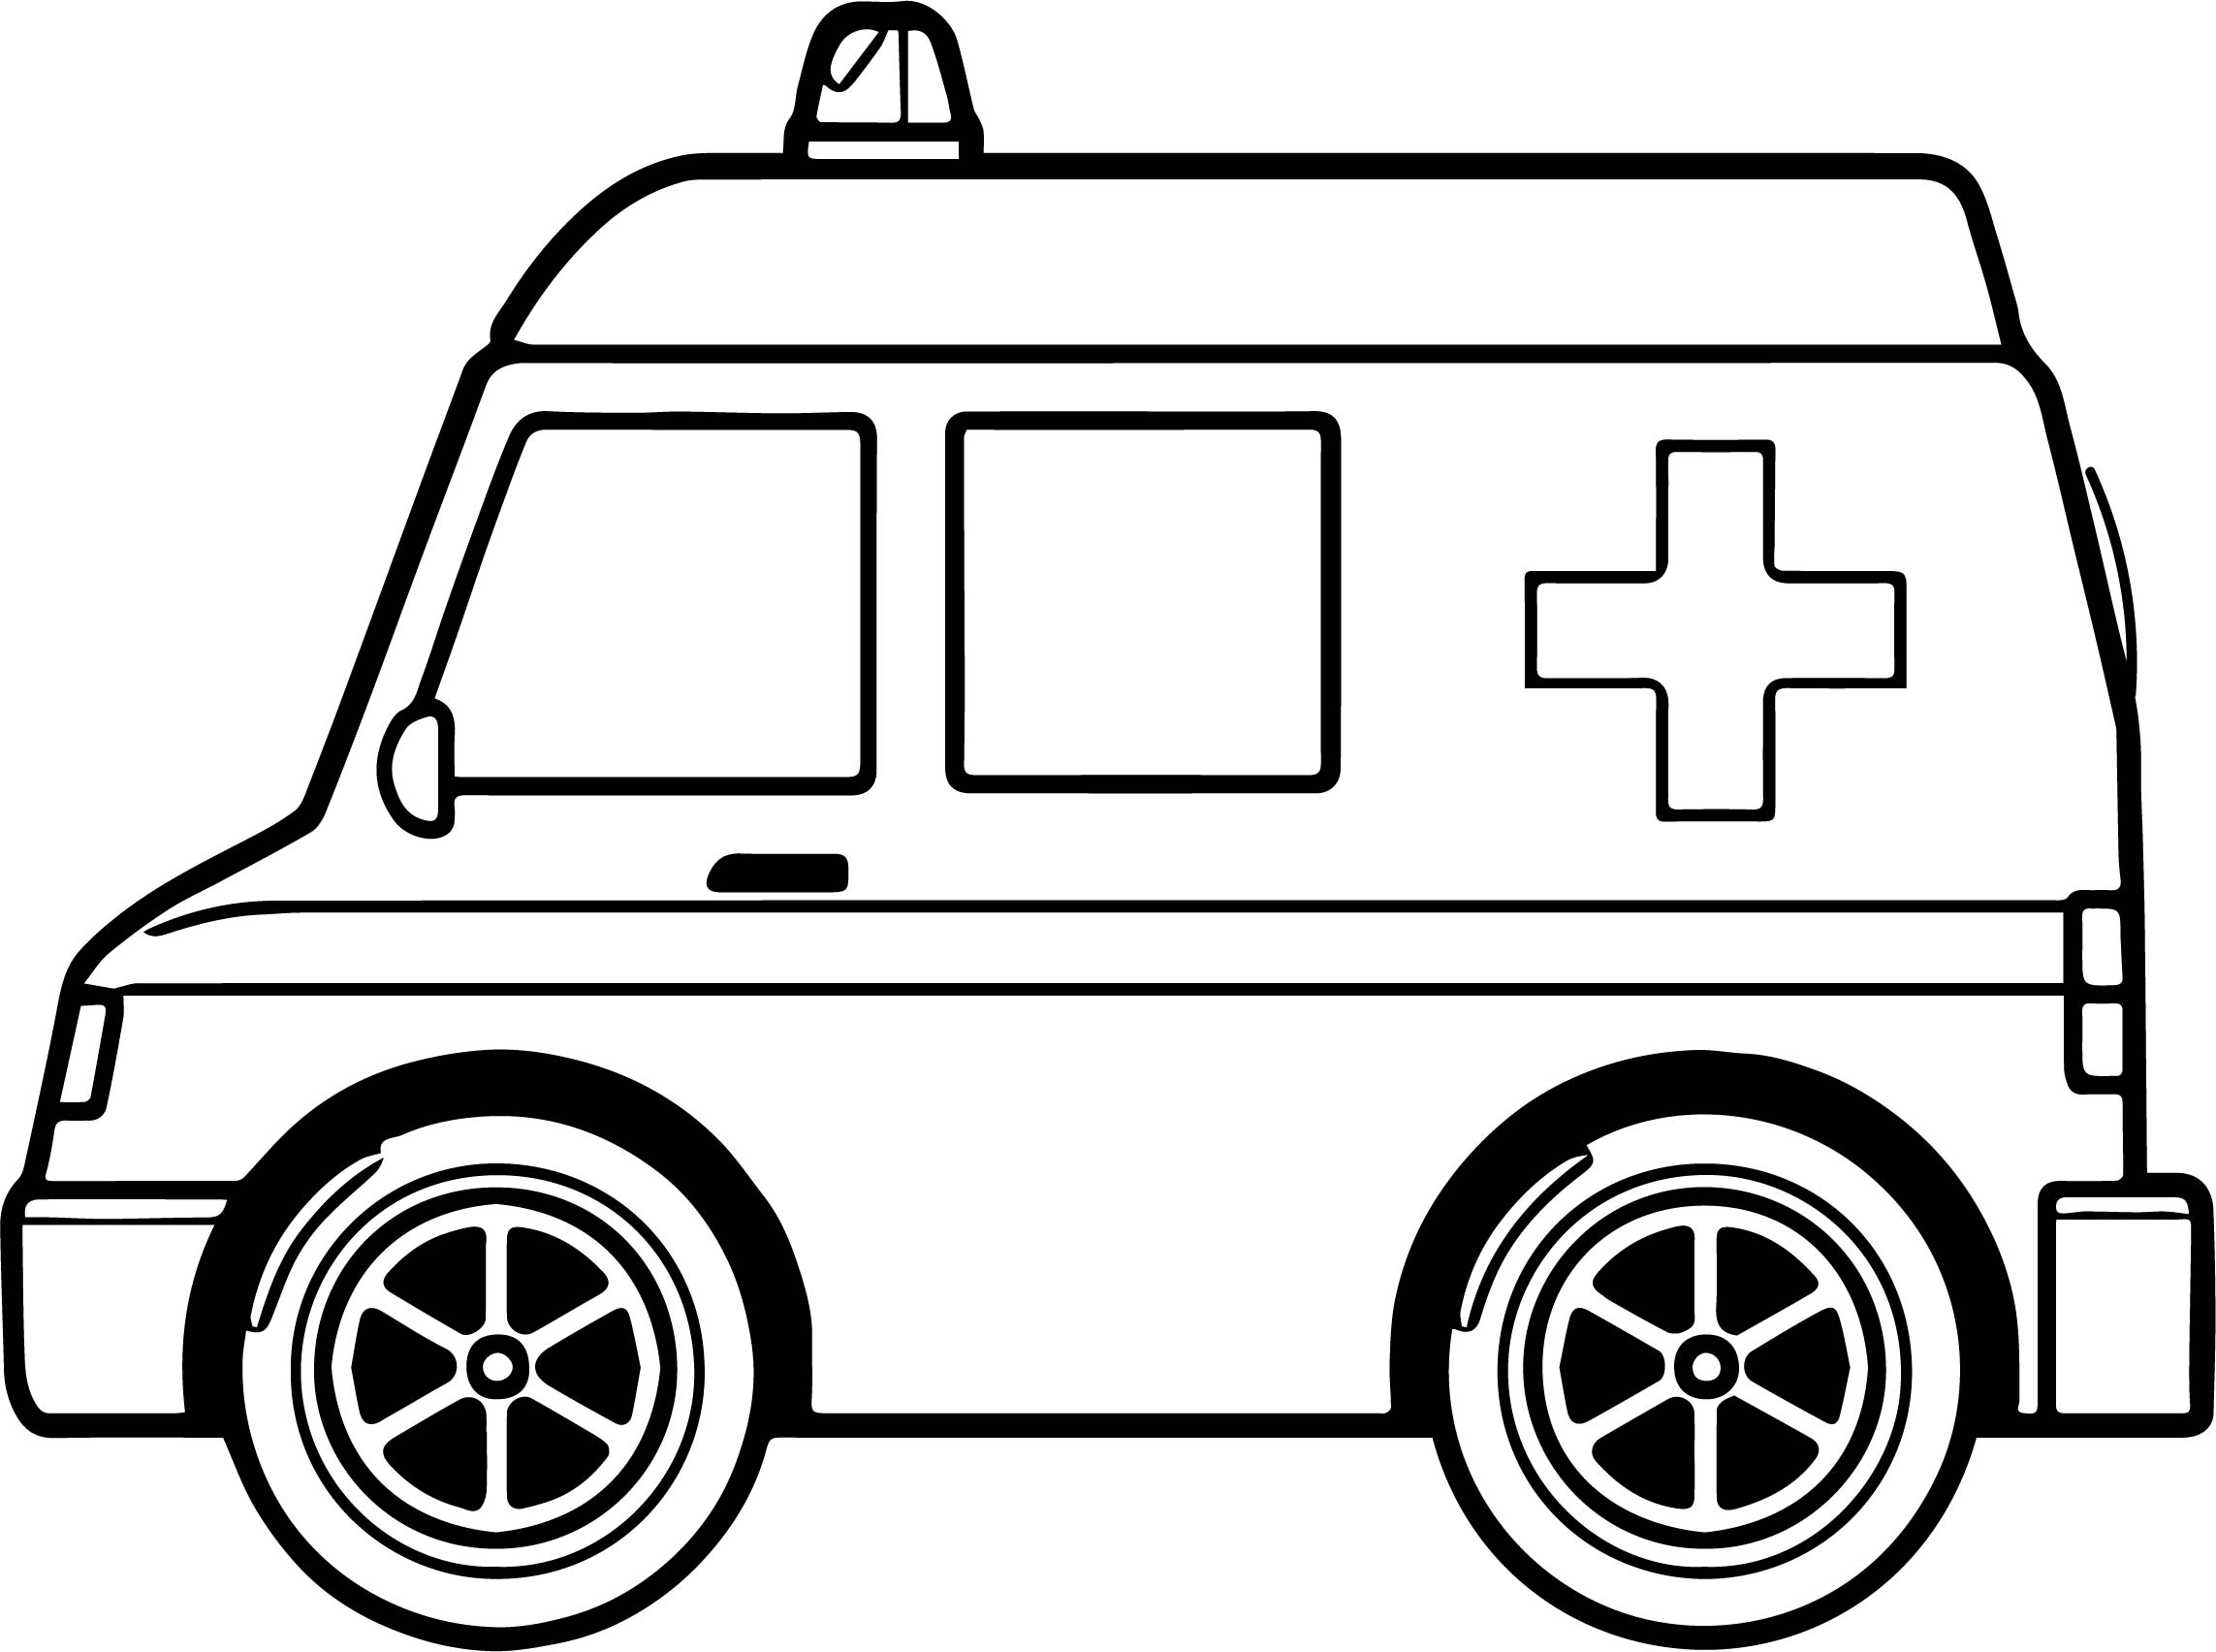 emergency vehicle coloring pages ambulance emergency rescue car coloring page coloring sheets pages vehicle coloring emergency